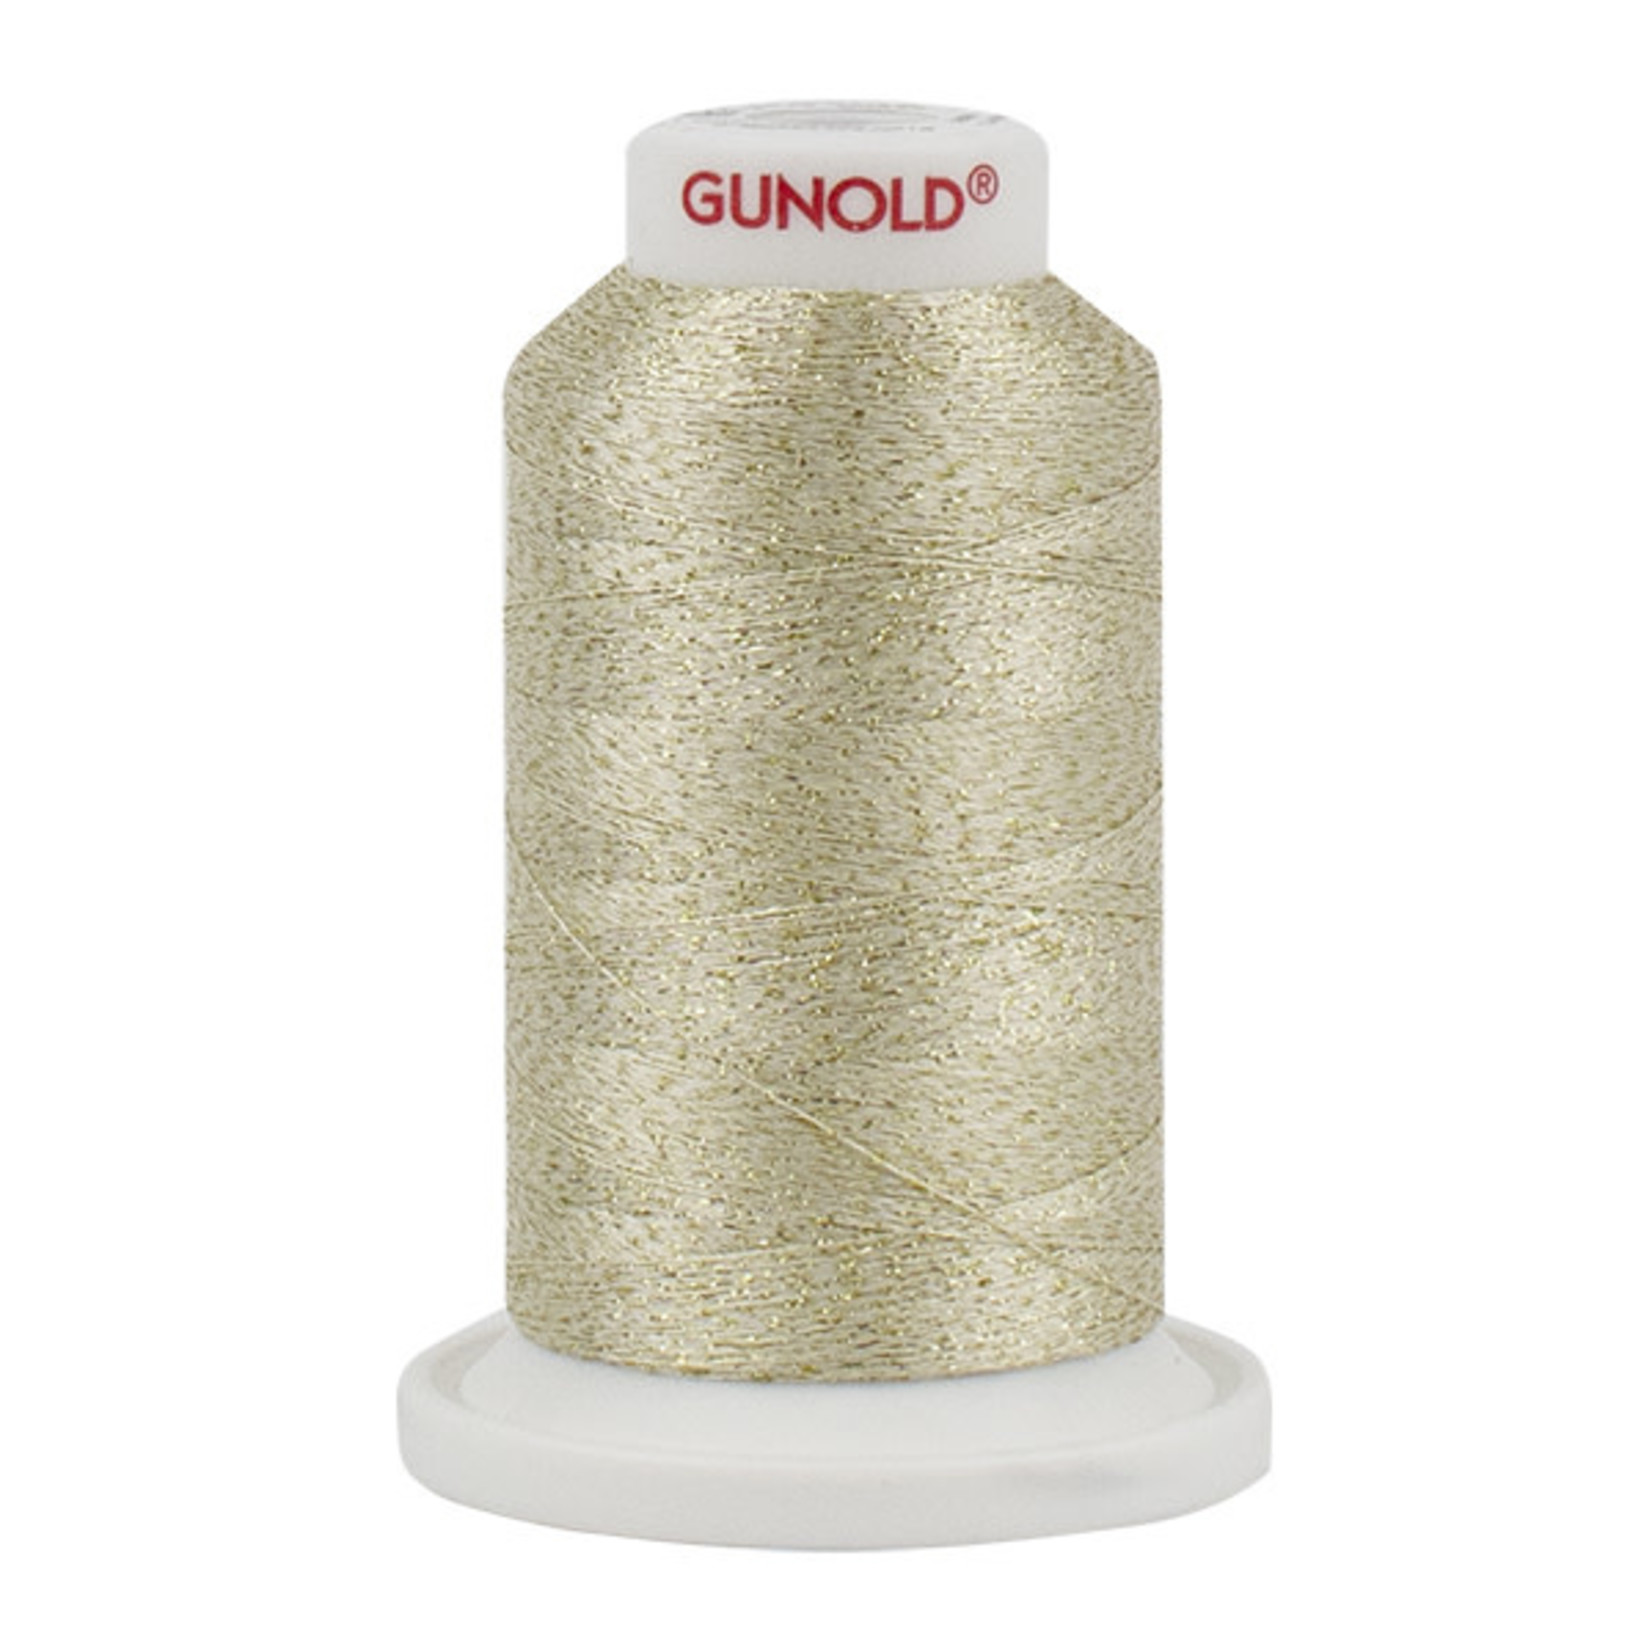 Gunold Poly Sparkle™ (Star™) Mini-King Cone 1,100 YD, 30 Wt, Vanilla with Gold 50526